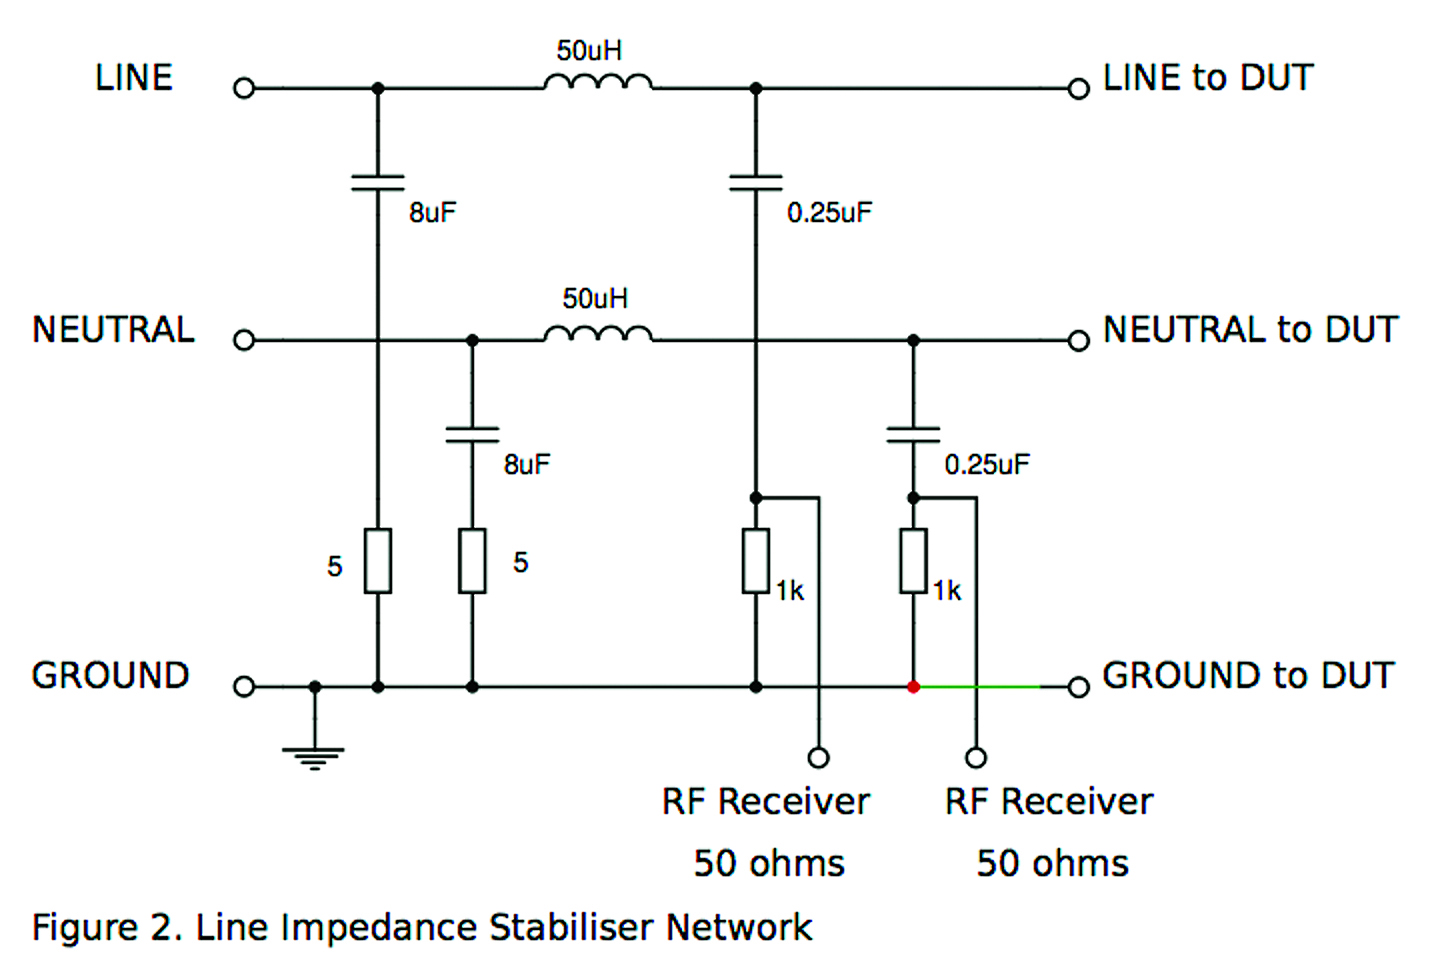 Input protection filters out the risks in power converters on